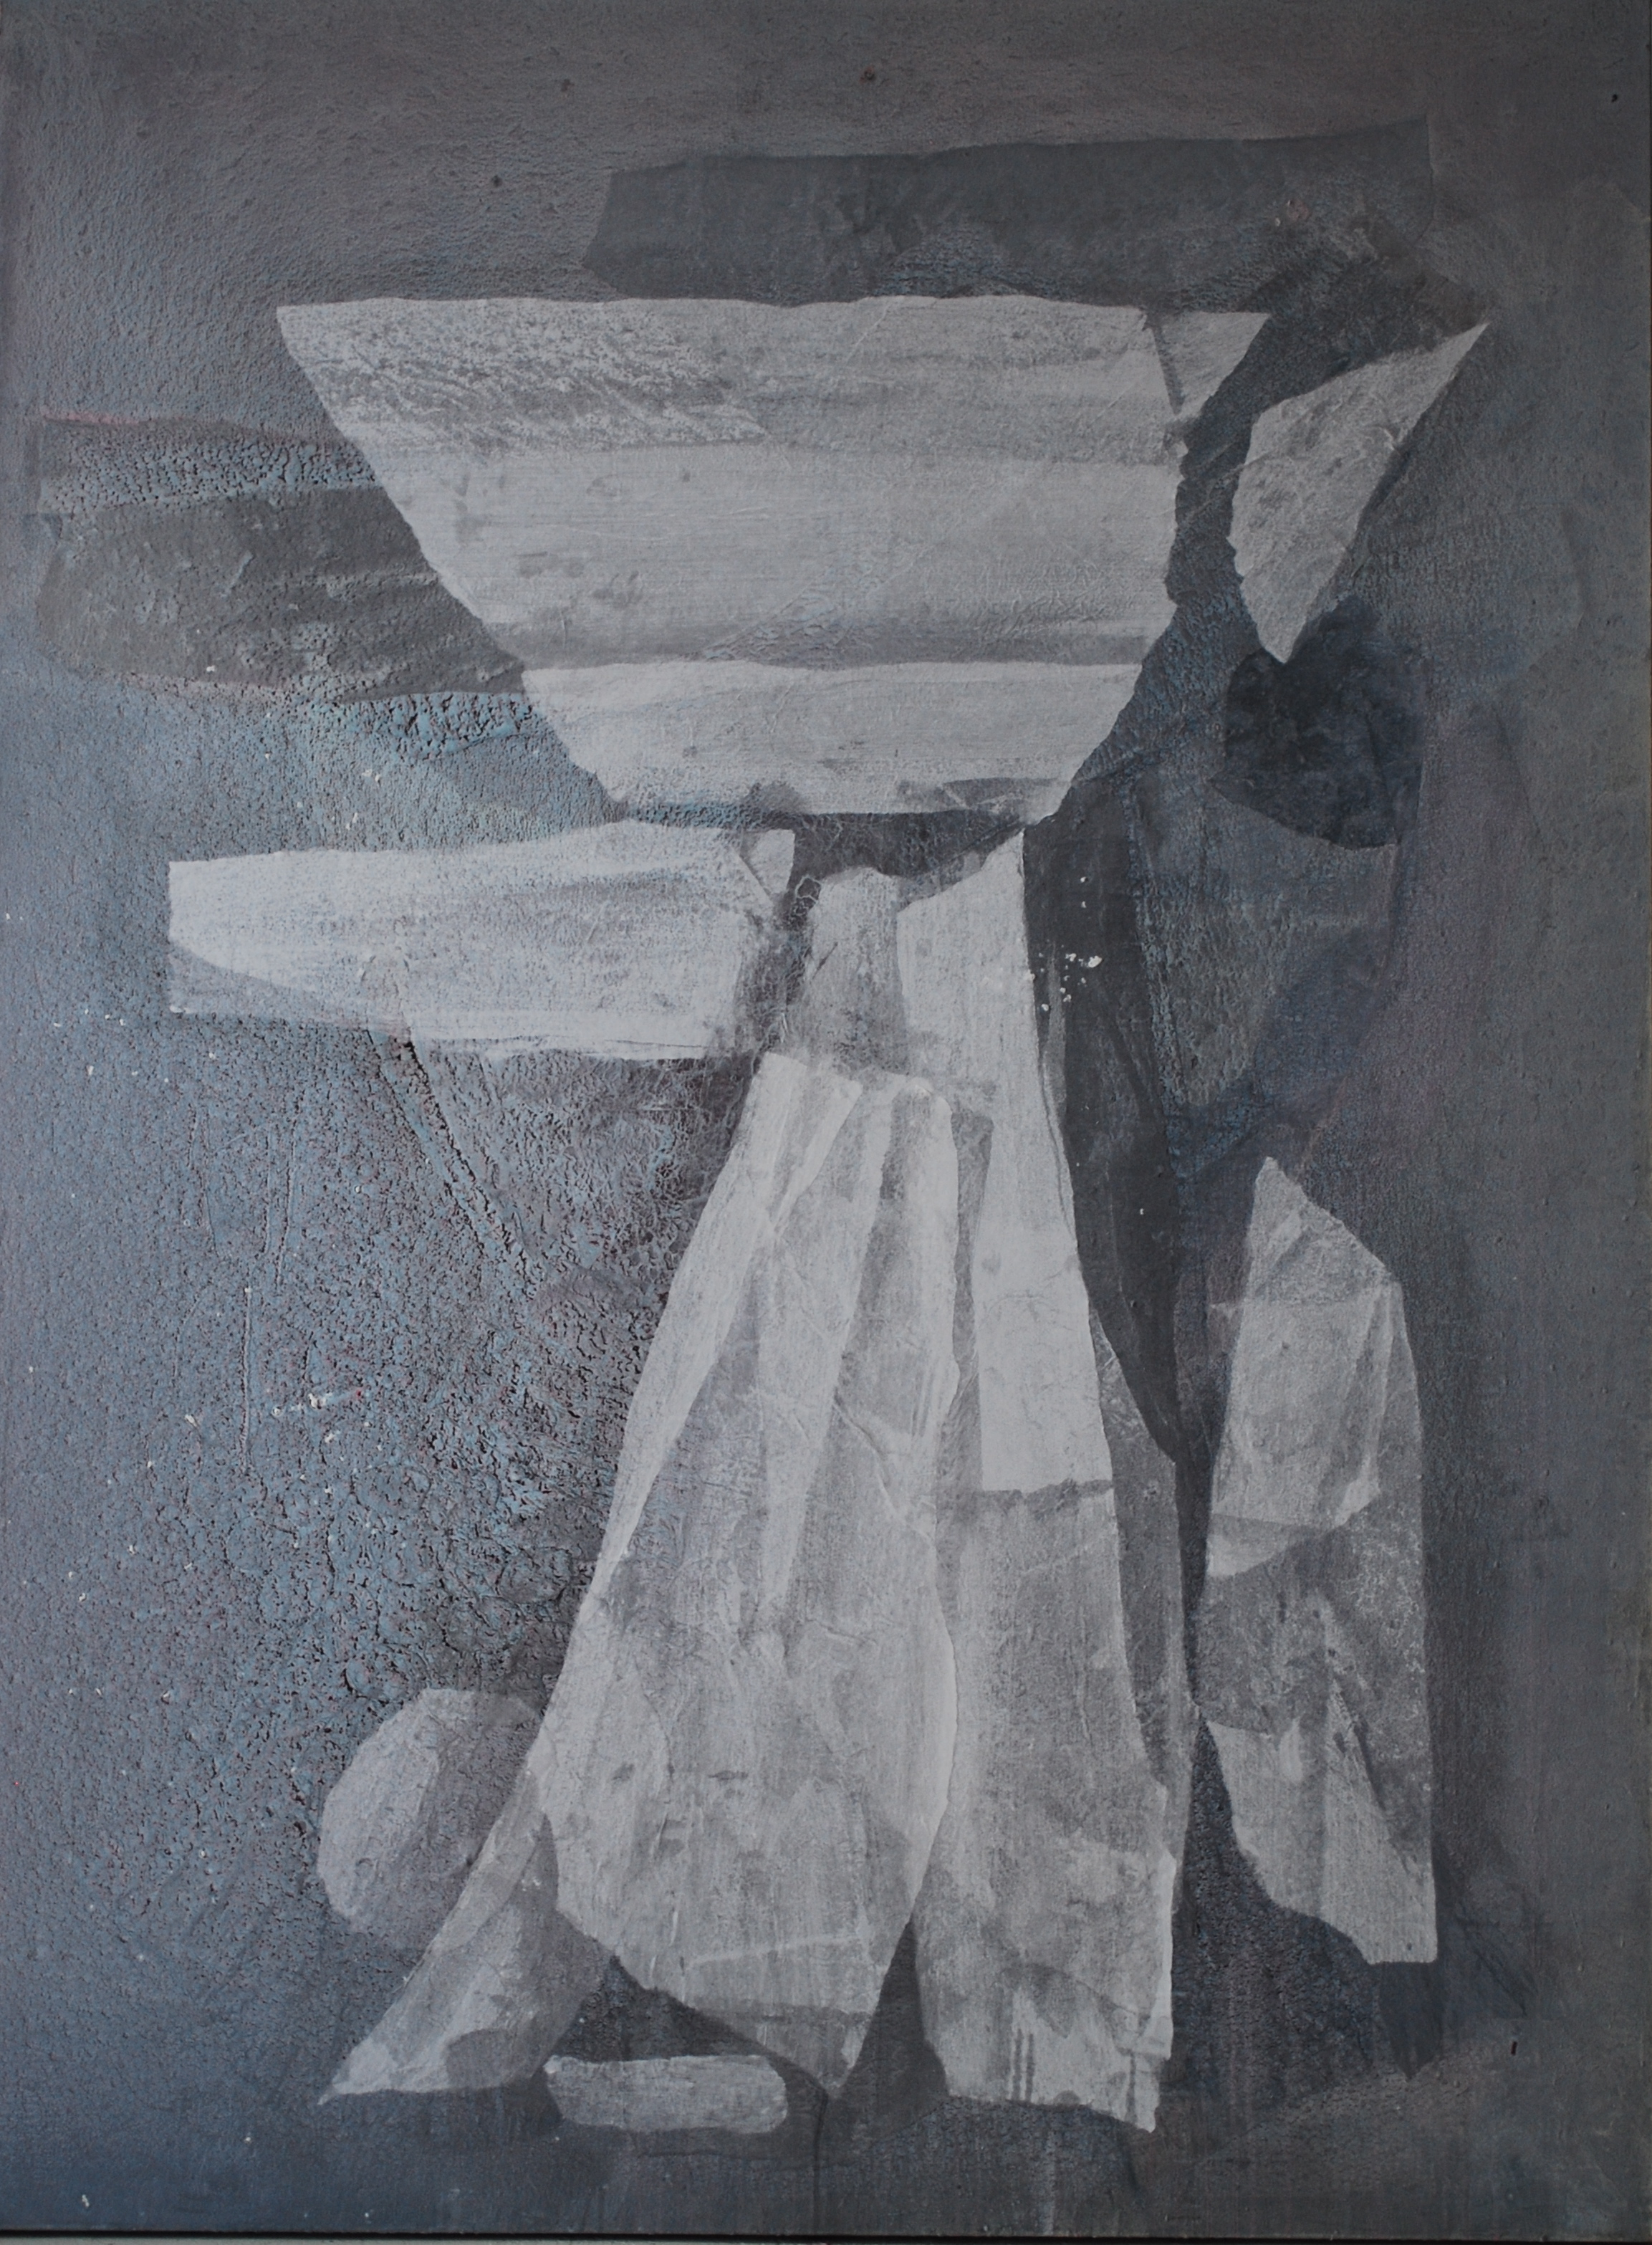 SoHyun Bae, Wrapped Shards: Egg Woman III, 2003, rice-paper and pure pigment on canvas, 81 x 60 inches